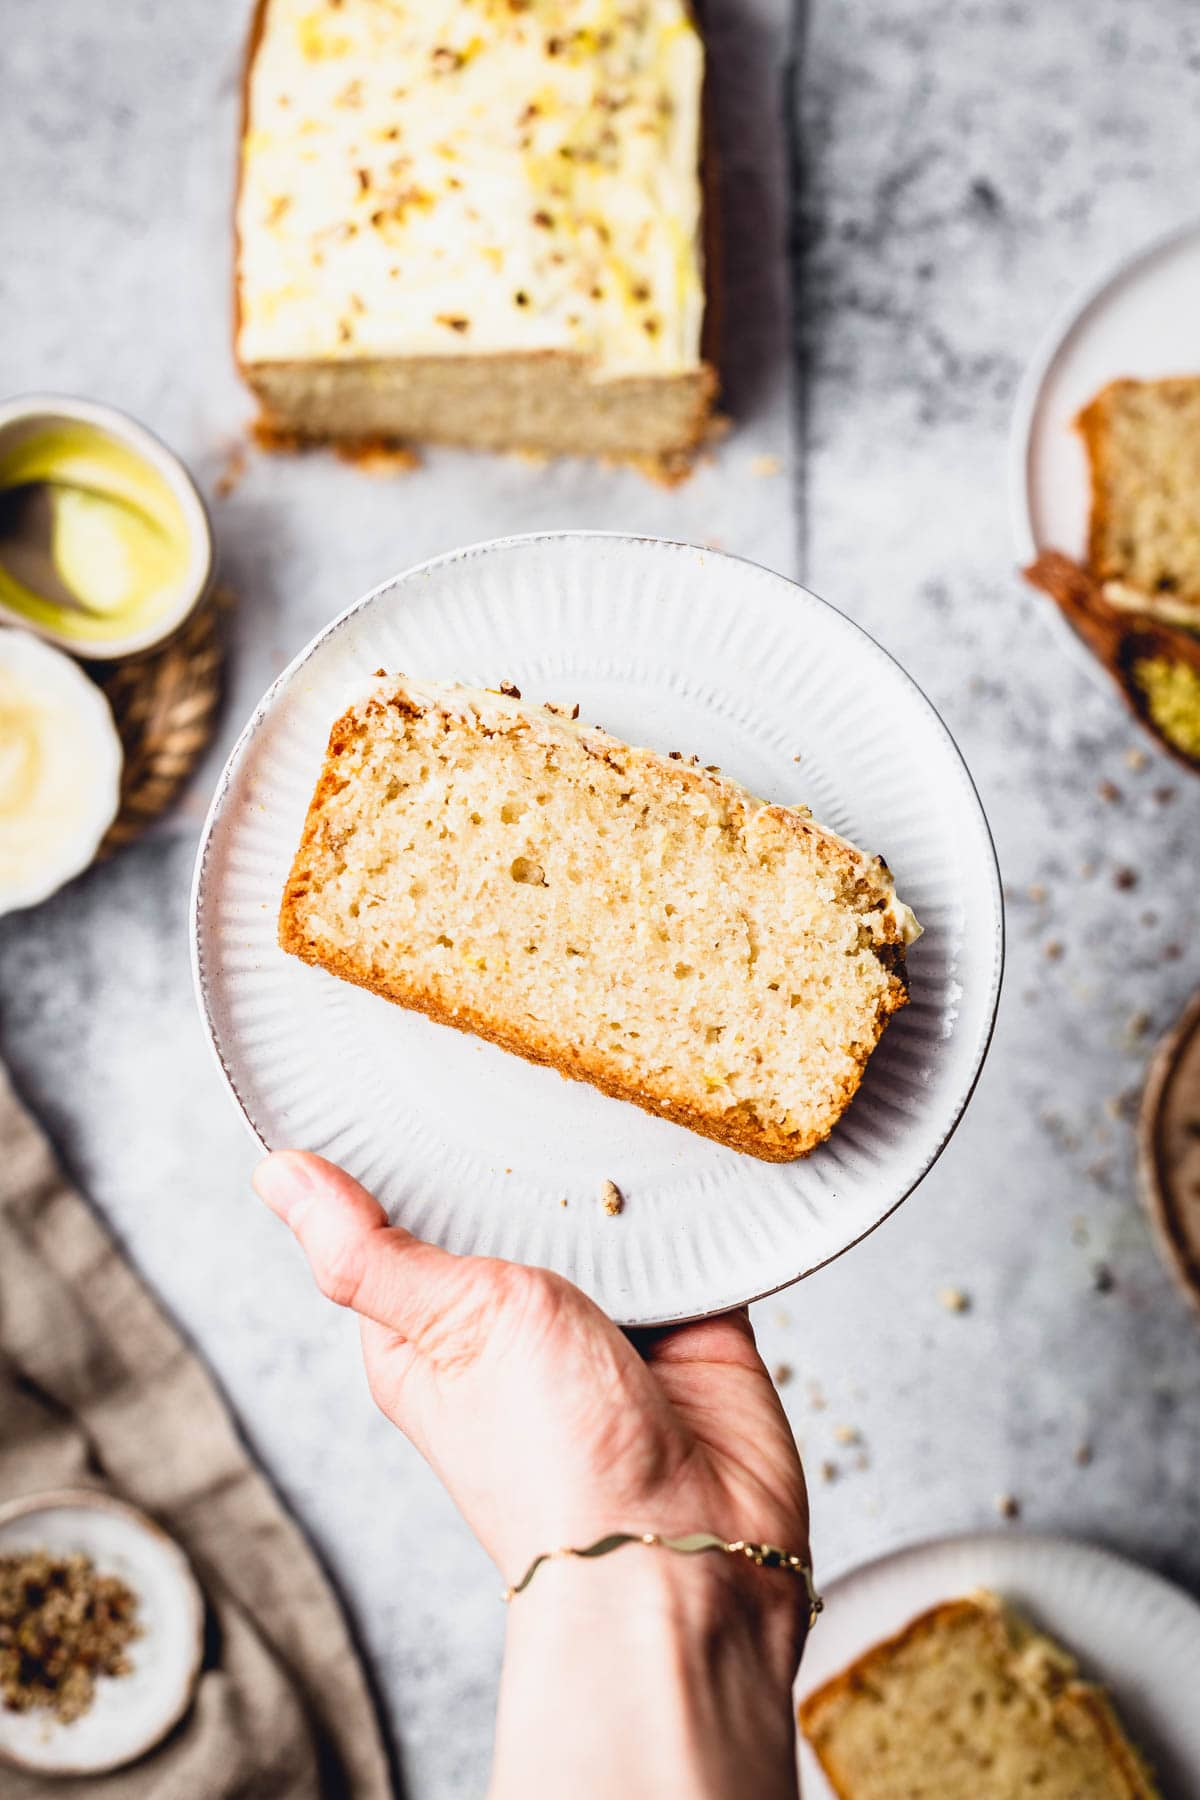 A hand holding a plate featuring a slice of lemon cake.